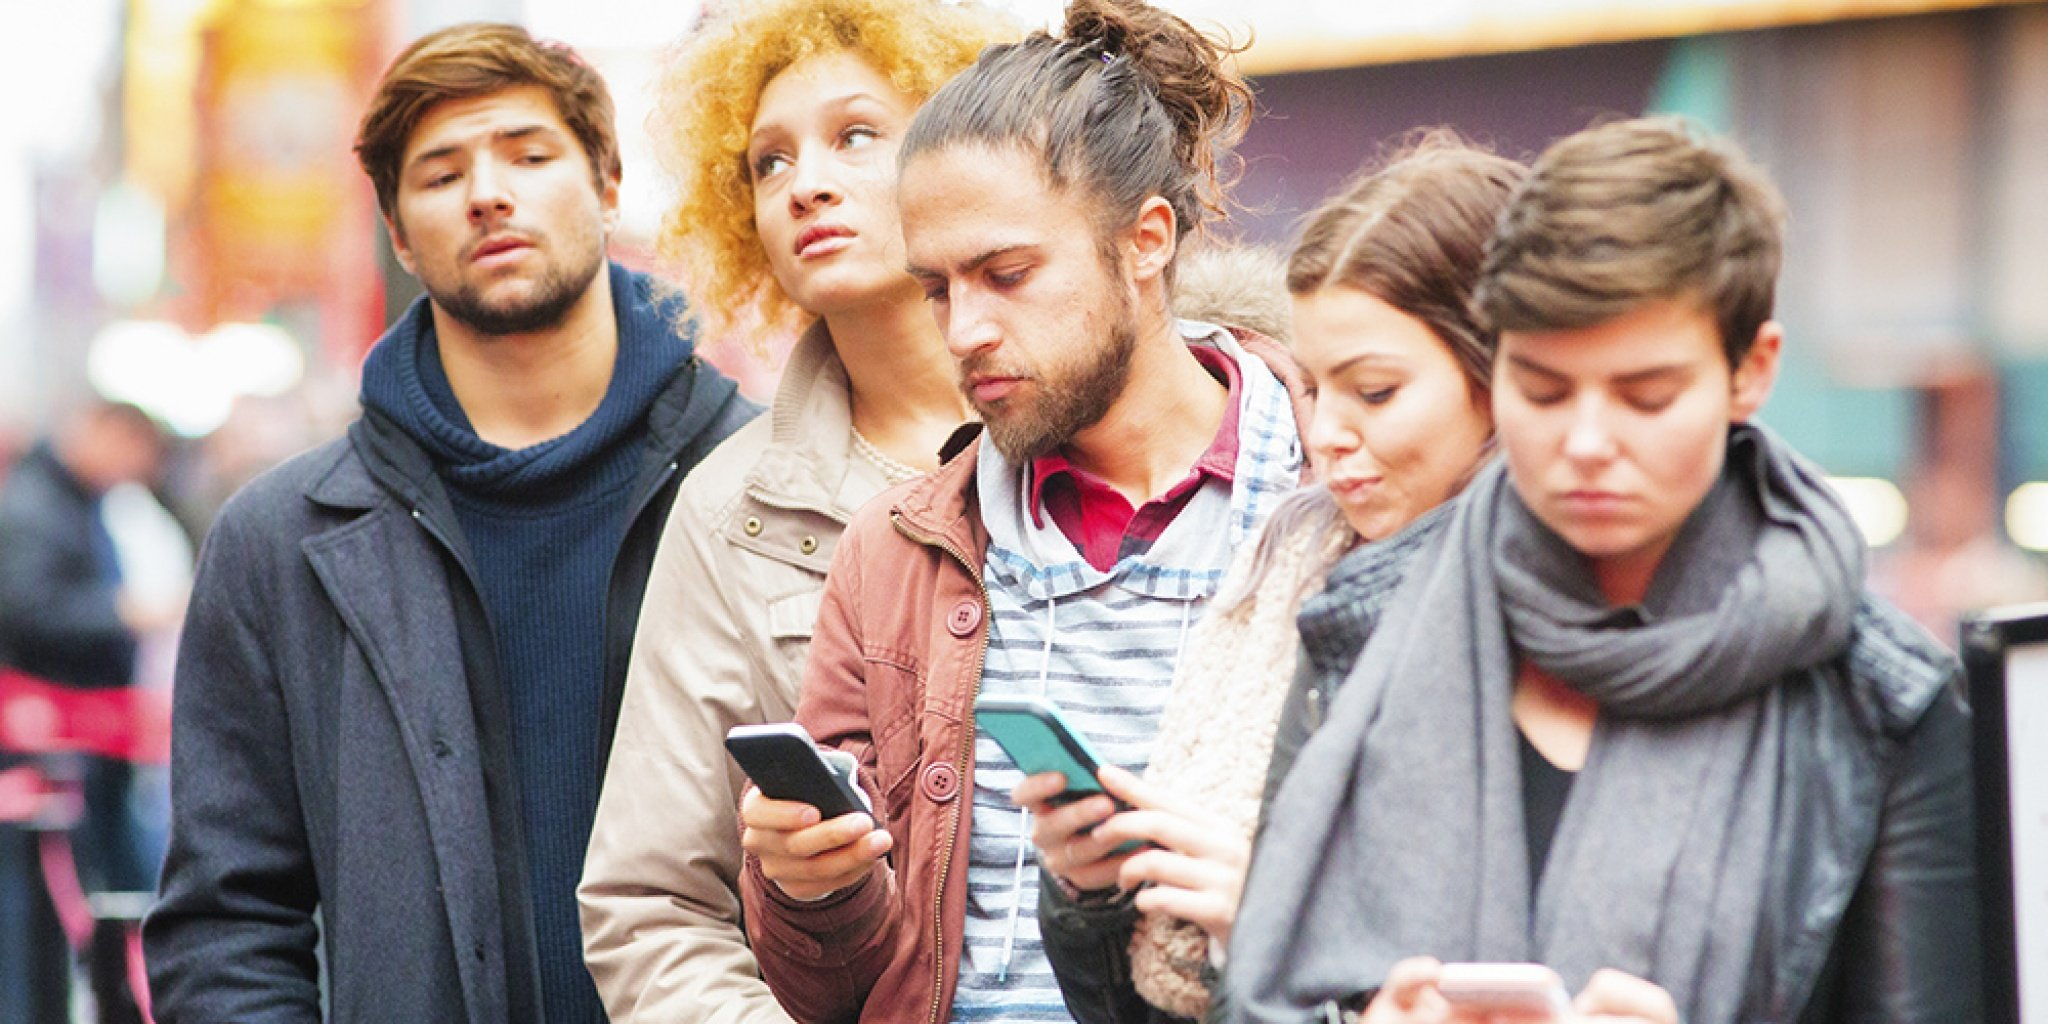 The 3 Negative Effects Of Social Media On Our Life